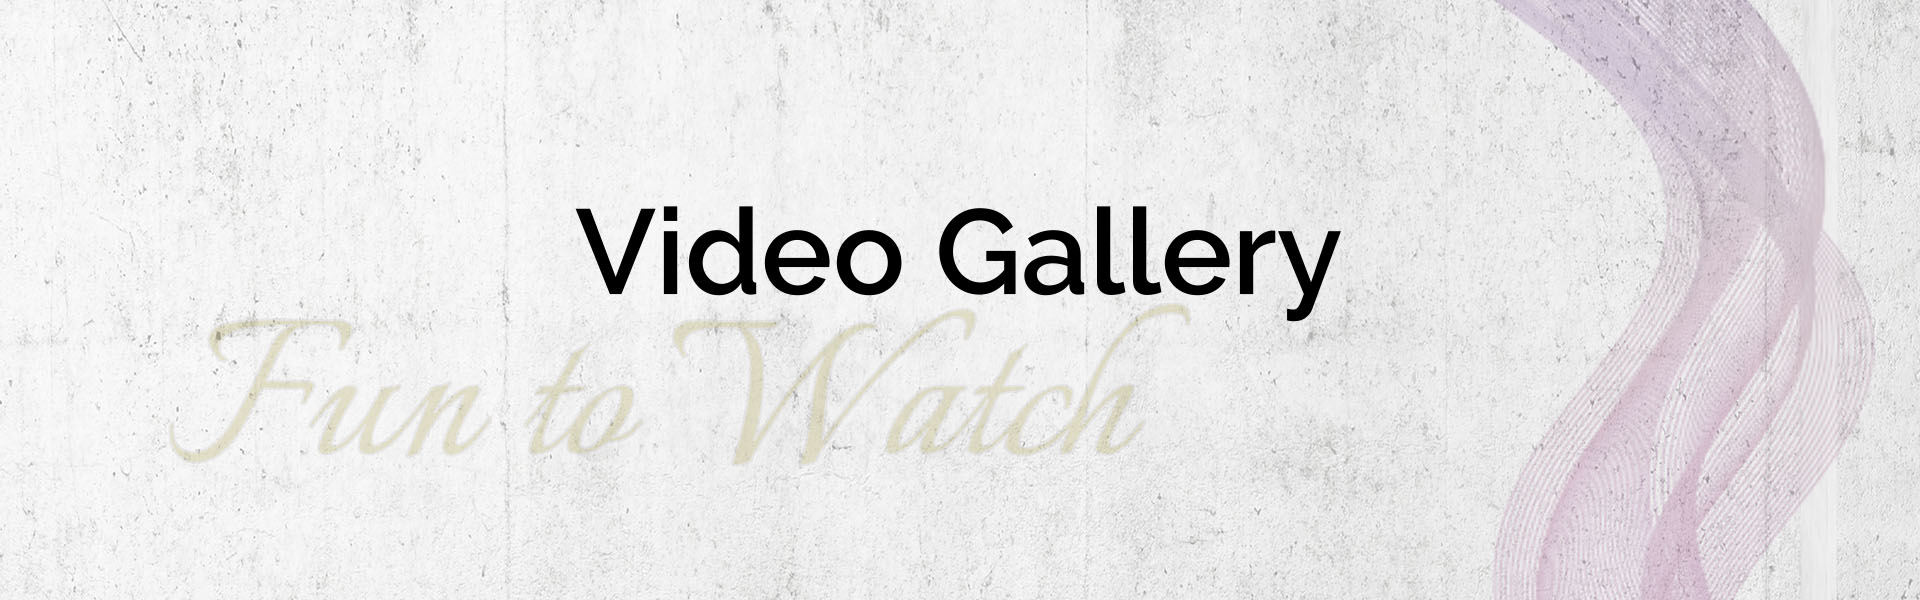 Video Gallery Banner